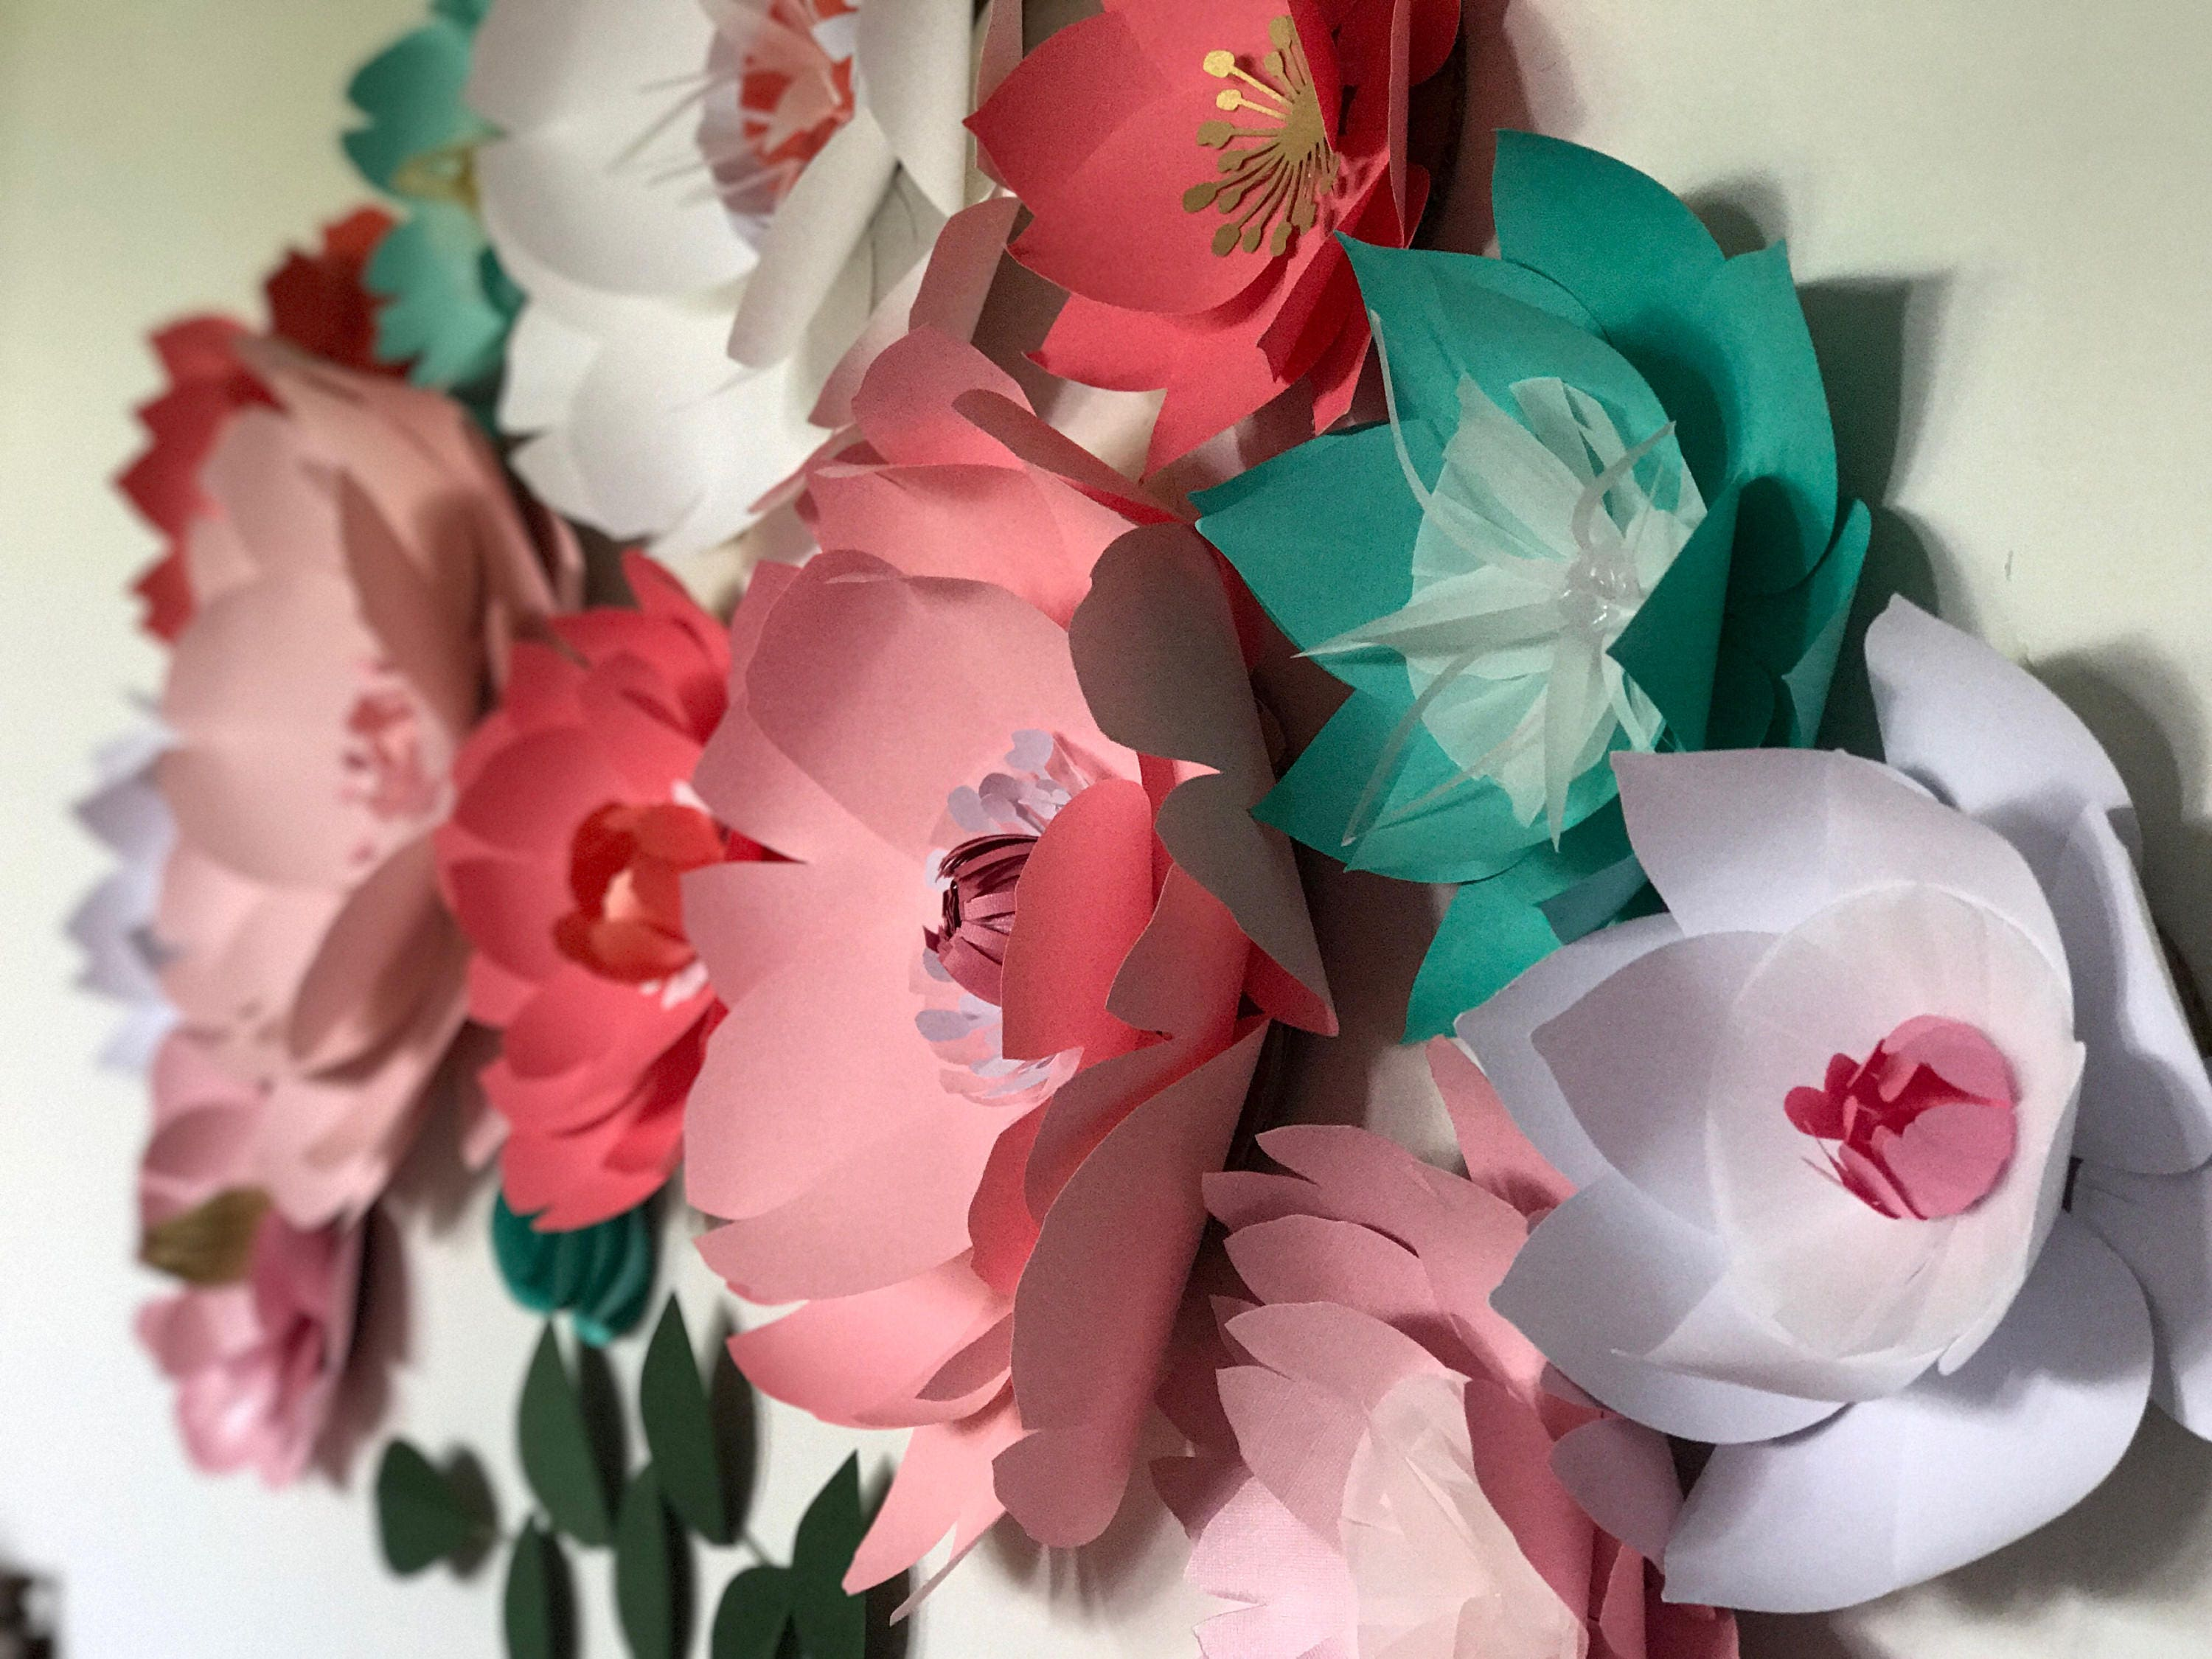 Pink nursery paper flower wall wedding decor giant teal flower girl ...